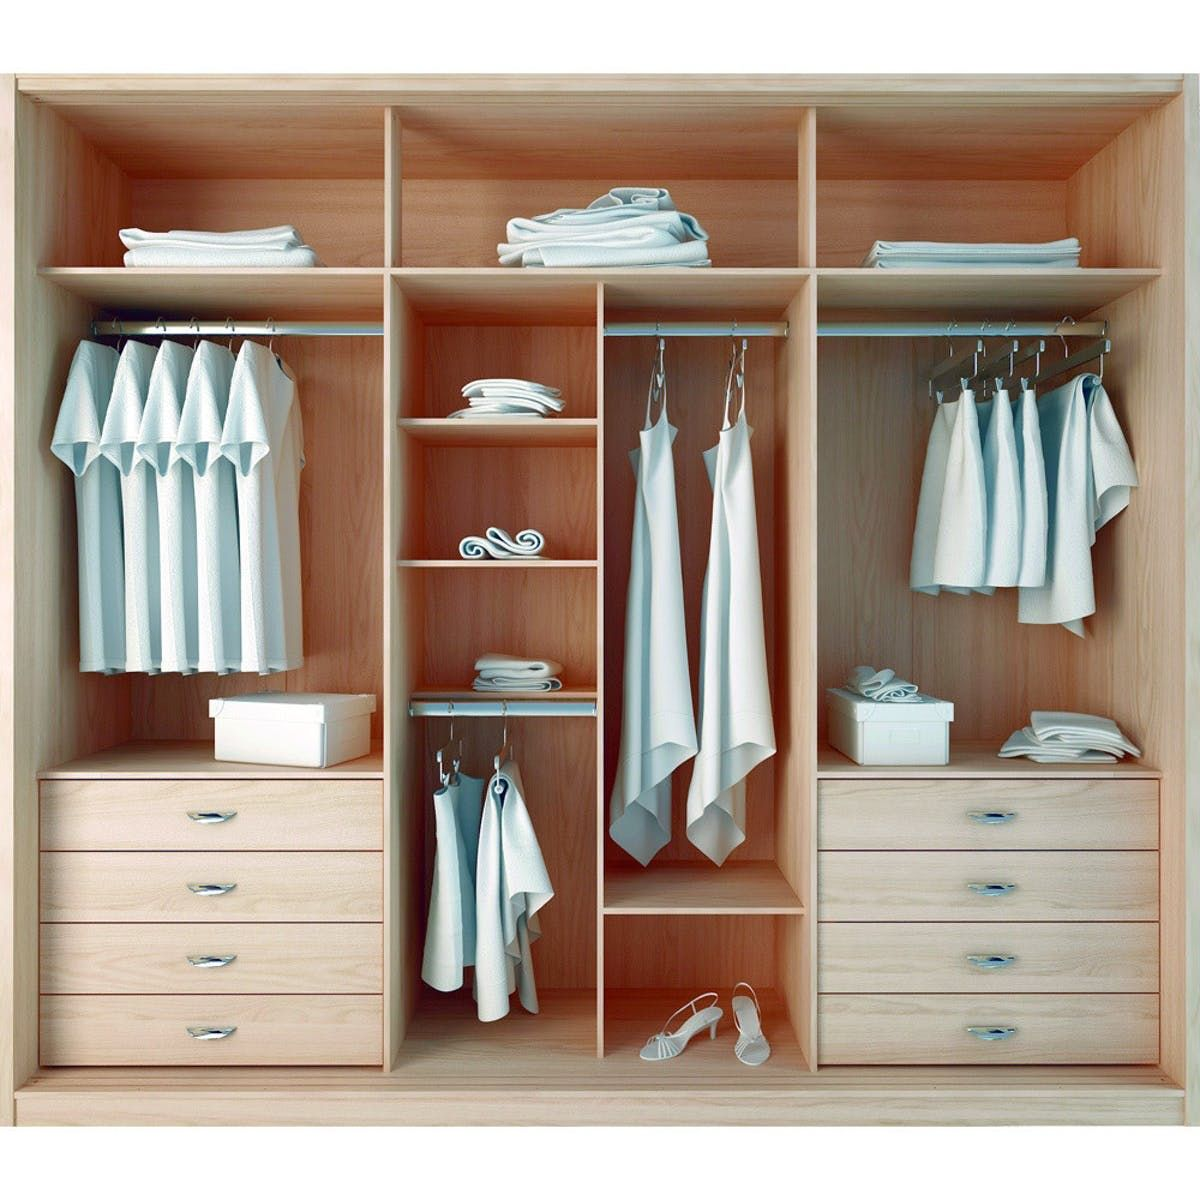 drawers the w chelsea cream wood maple systems manhattan full comfort home with p touch depot wardrobe pro in closet